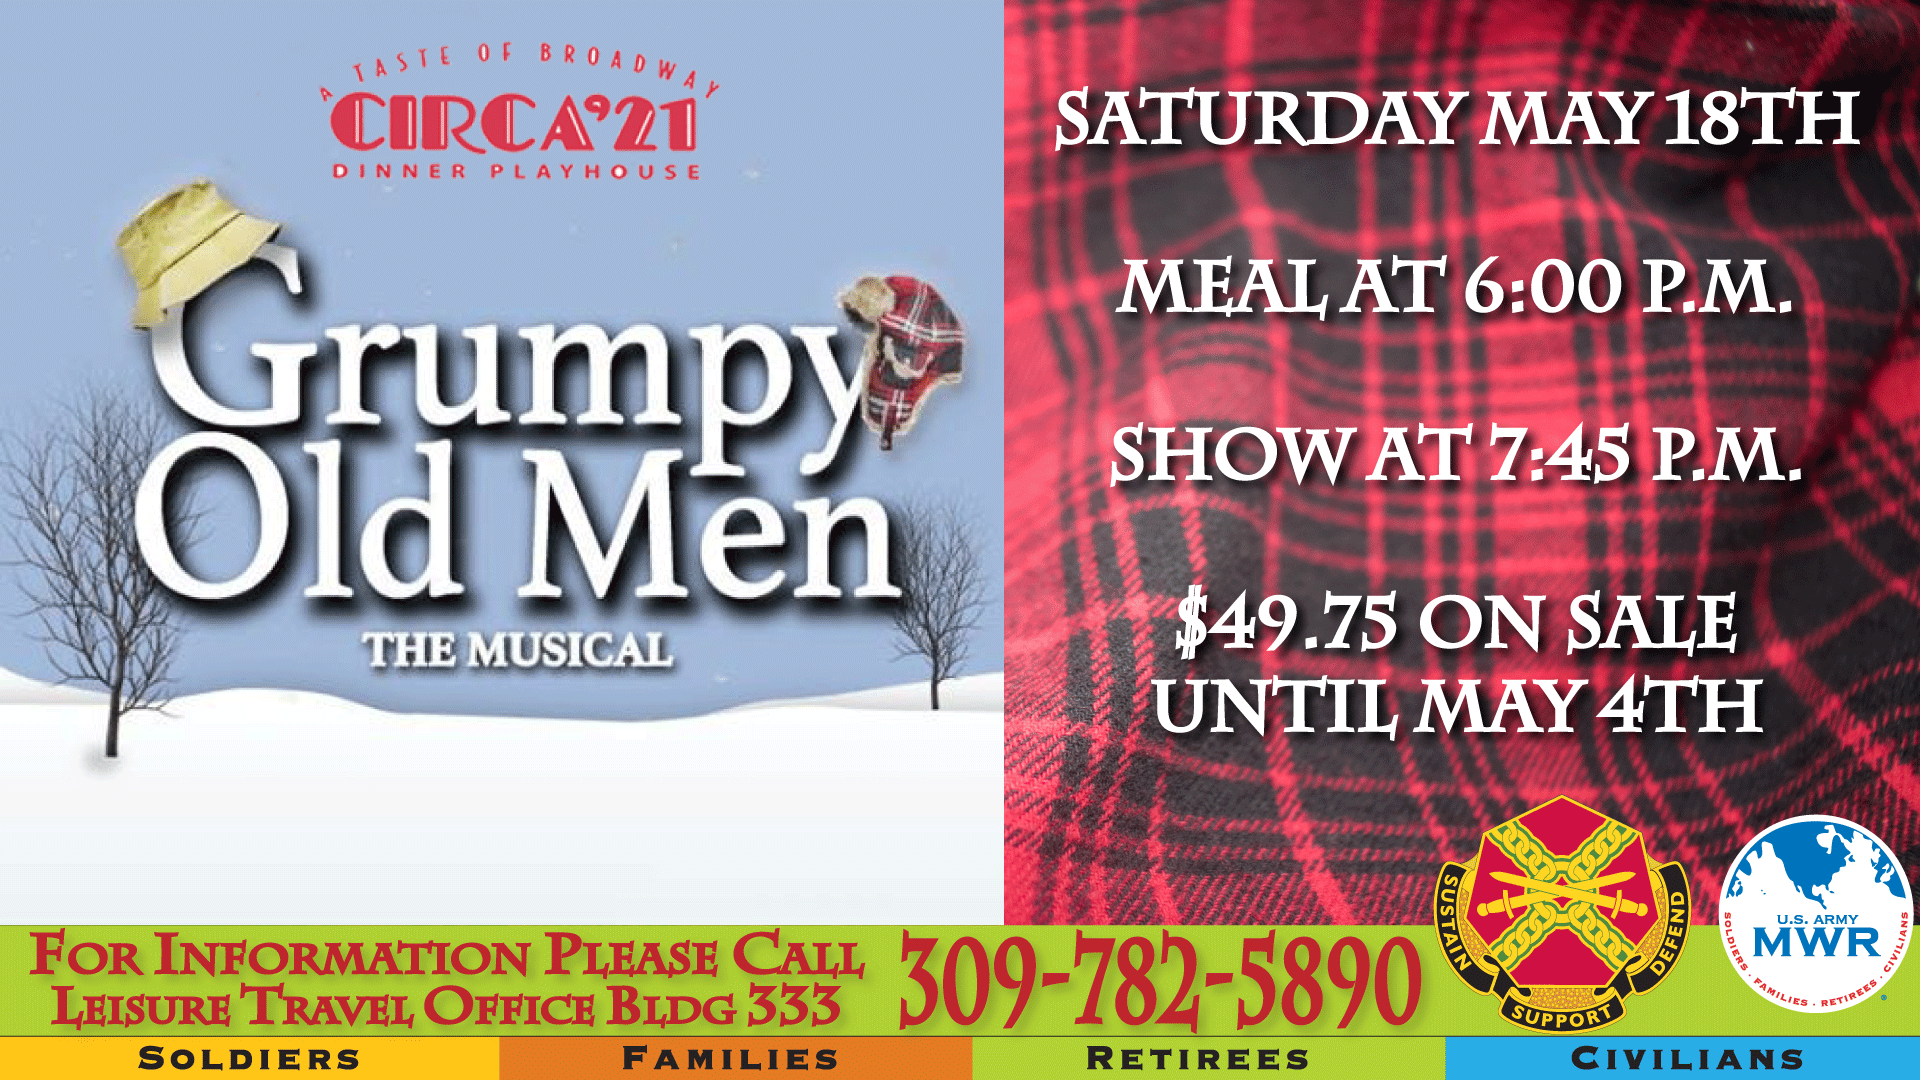 Grumpy Old Men the Musical